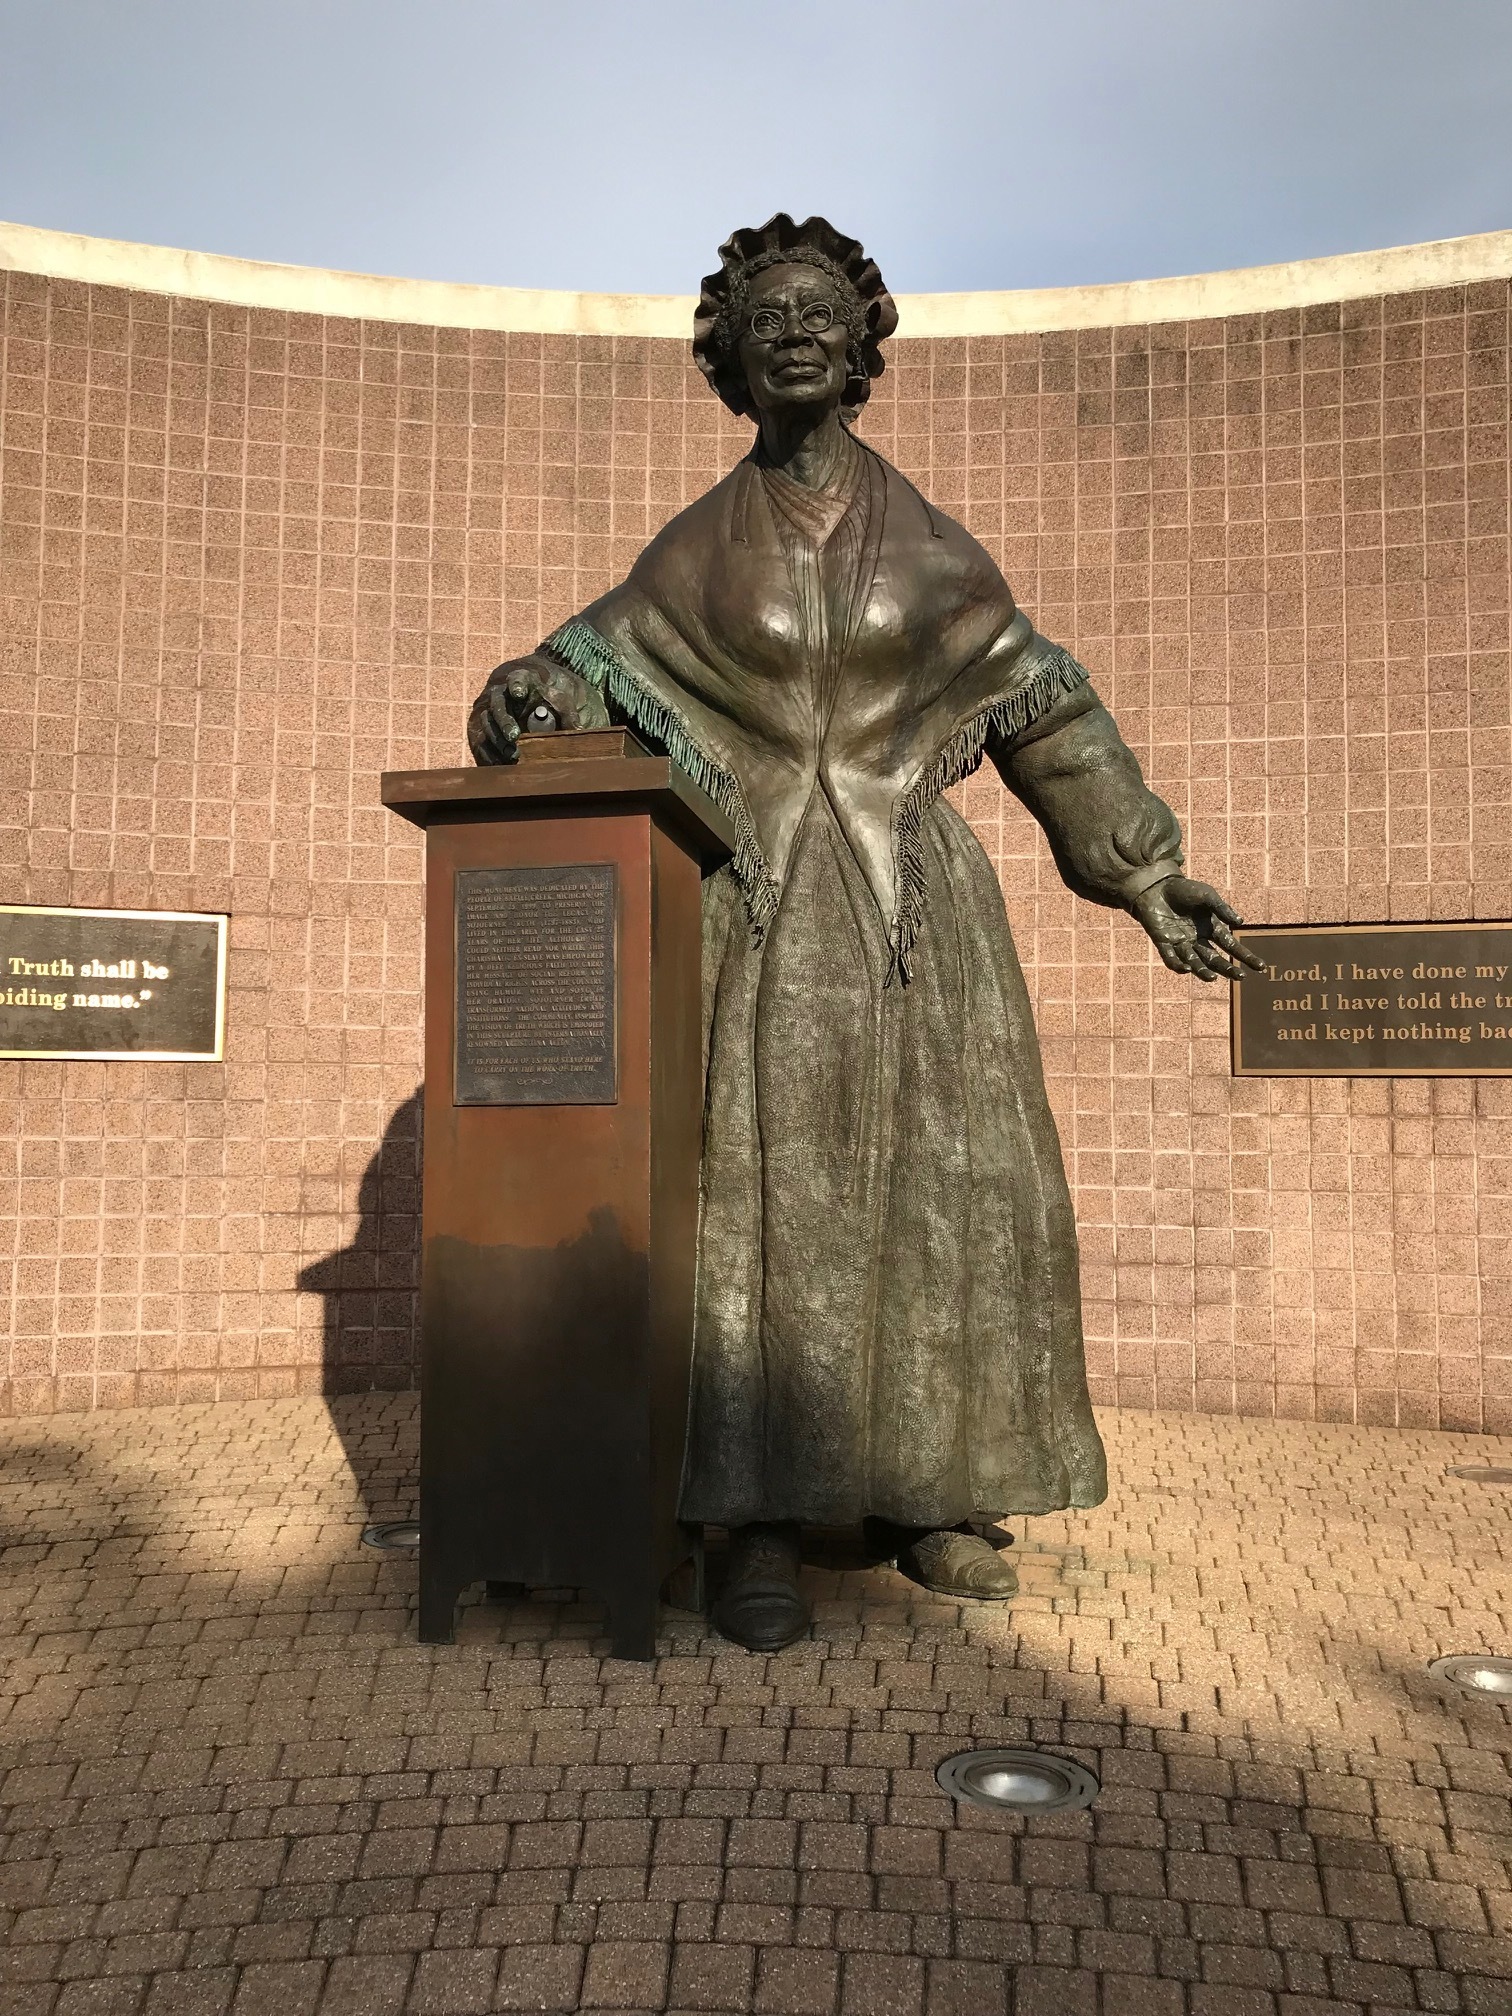 The Sojourner Truth  Monument. This site has been a place   for more than just reflection on the past and her legacy and courage. Public demonstrations have been held here   for showing support to people of color when standing in solidarity to hold   vigil for peace and nonviolence. I've   been here with many others in the aftermath of violence done to individuals   in other communities as a coming together in fellowship. This place is both secular and sacred in   Battle Creek. Corner of E Michigan Ave  and N Division St